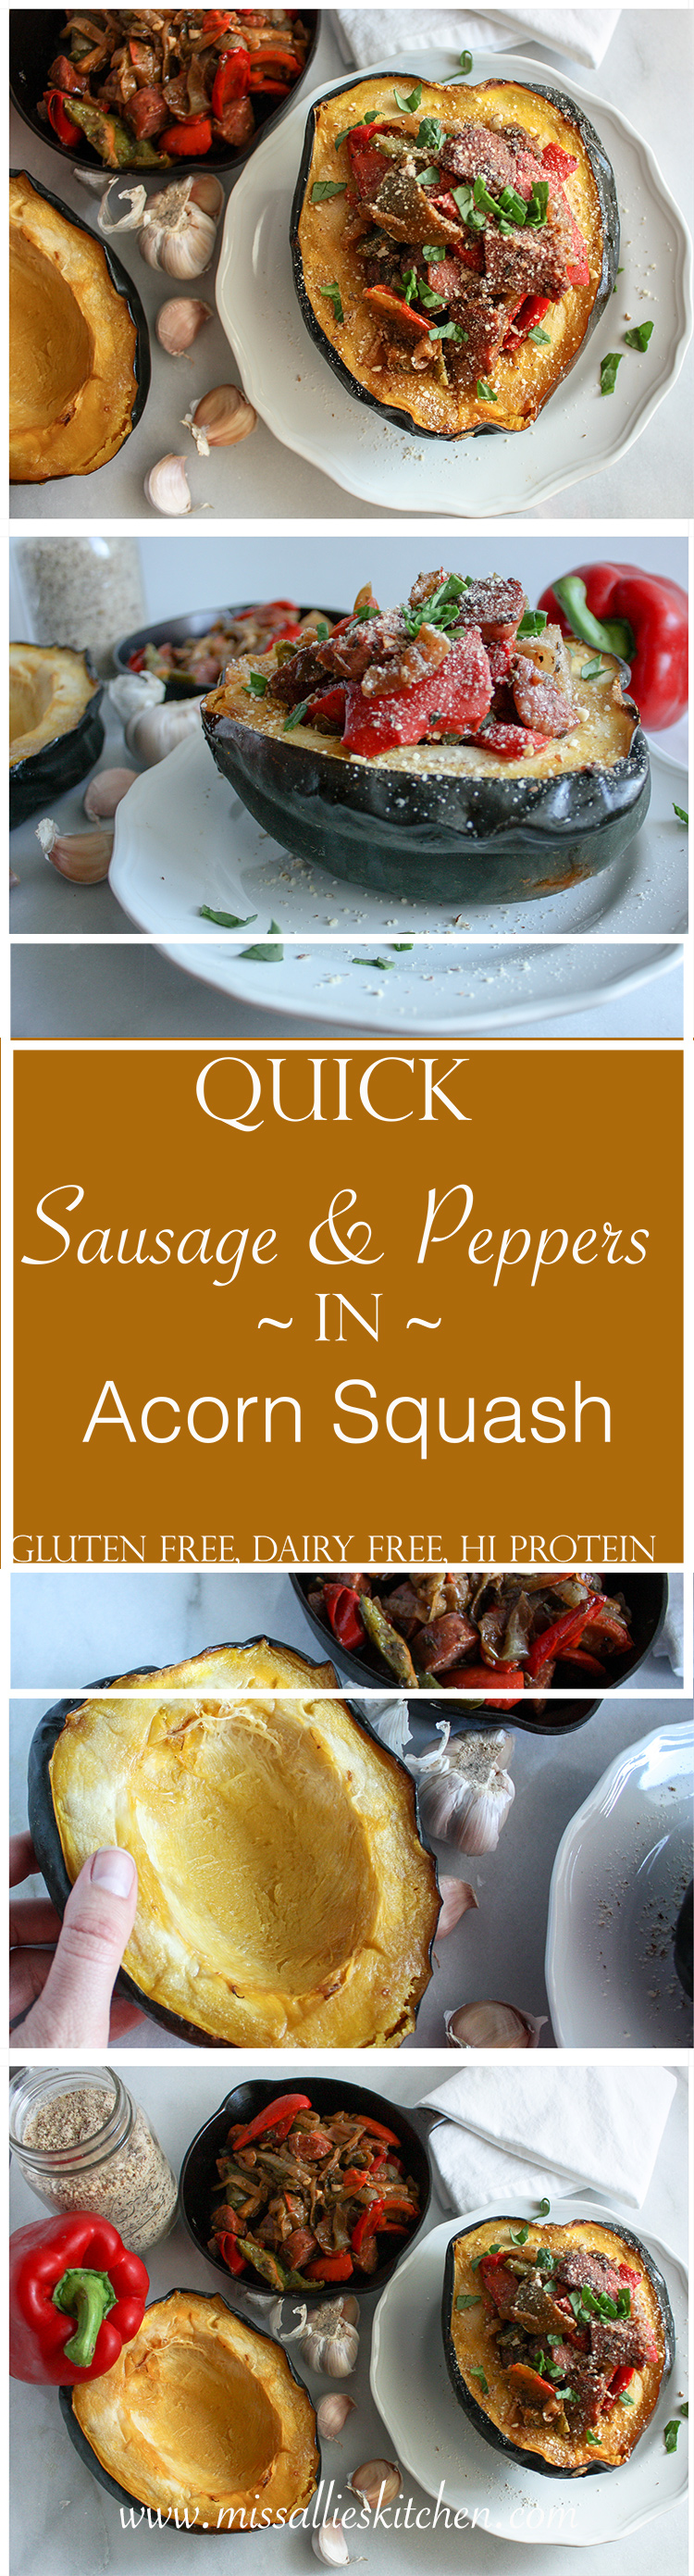 Quick & Easy Sausage and Peppers stuffed into a harvest Acorn Squash - a gluten free & healthy spin on a family favorite